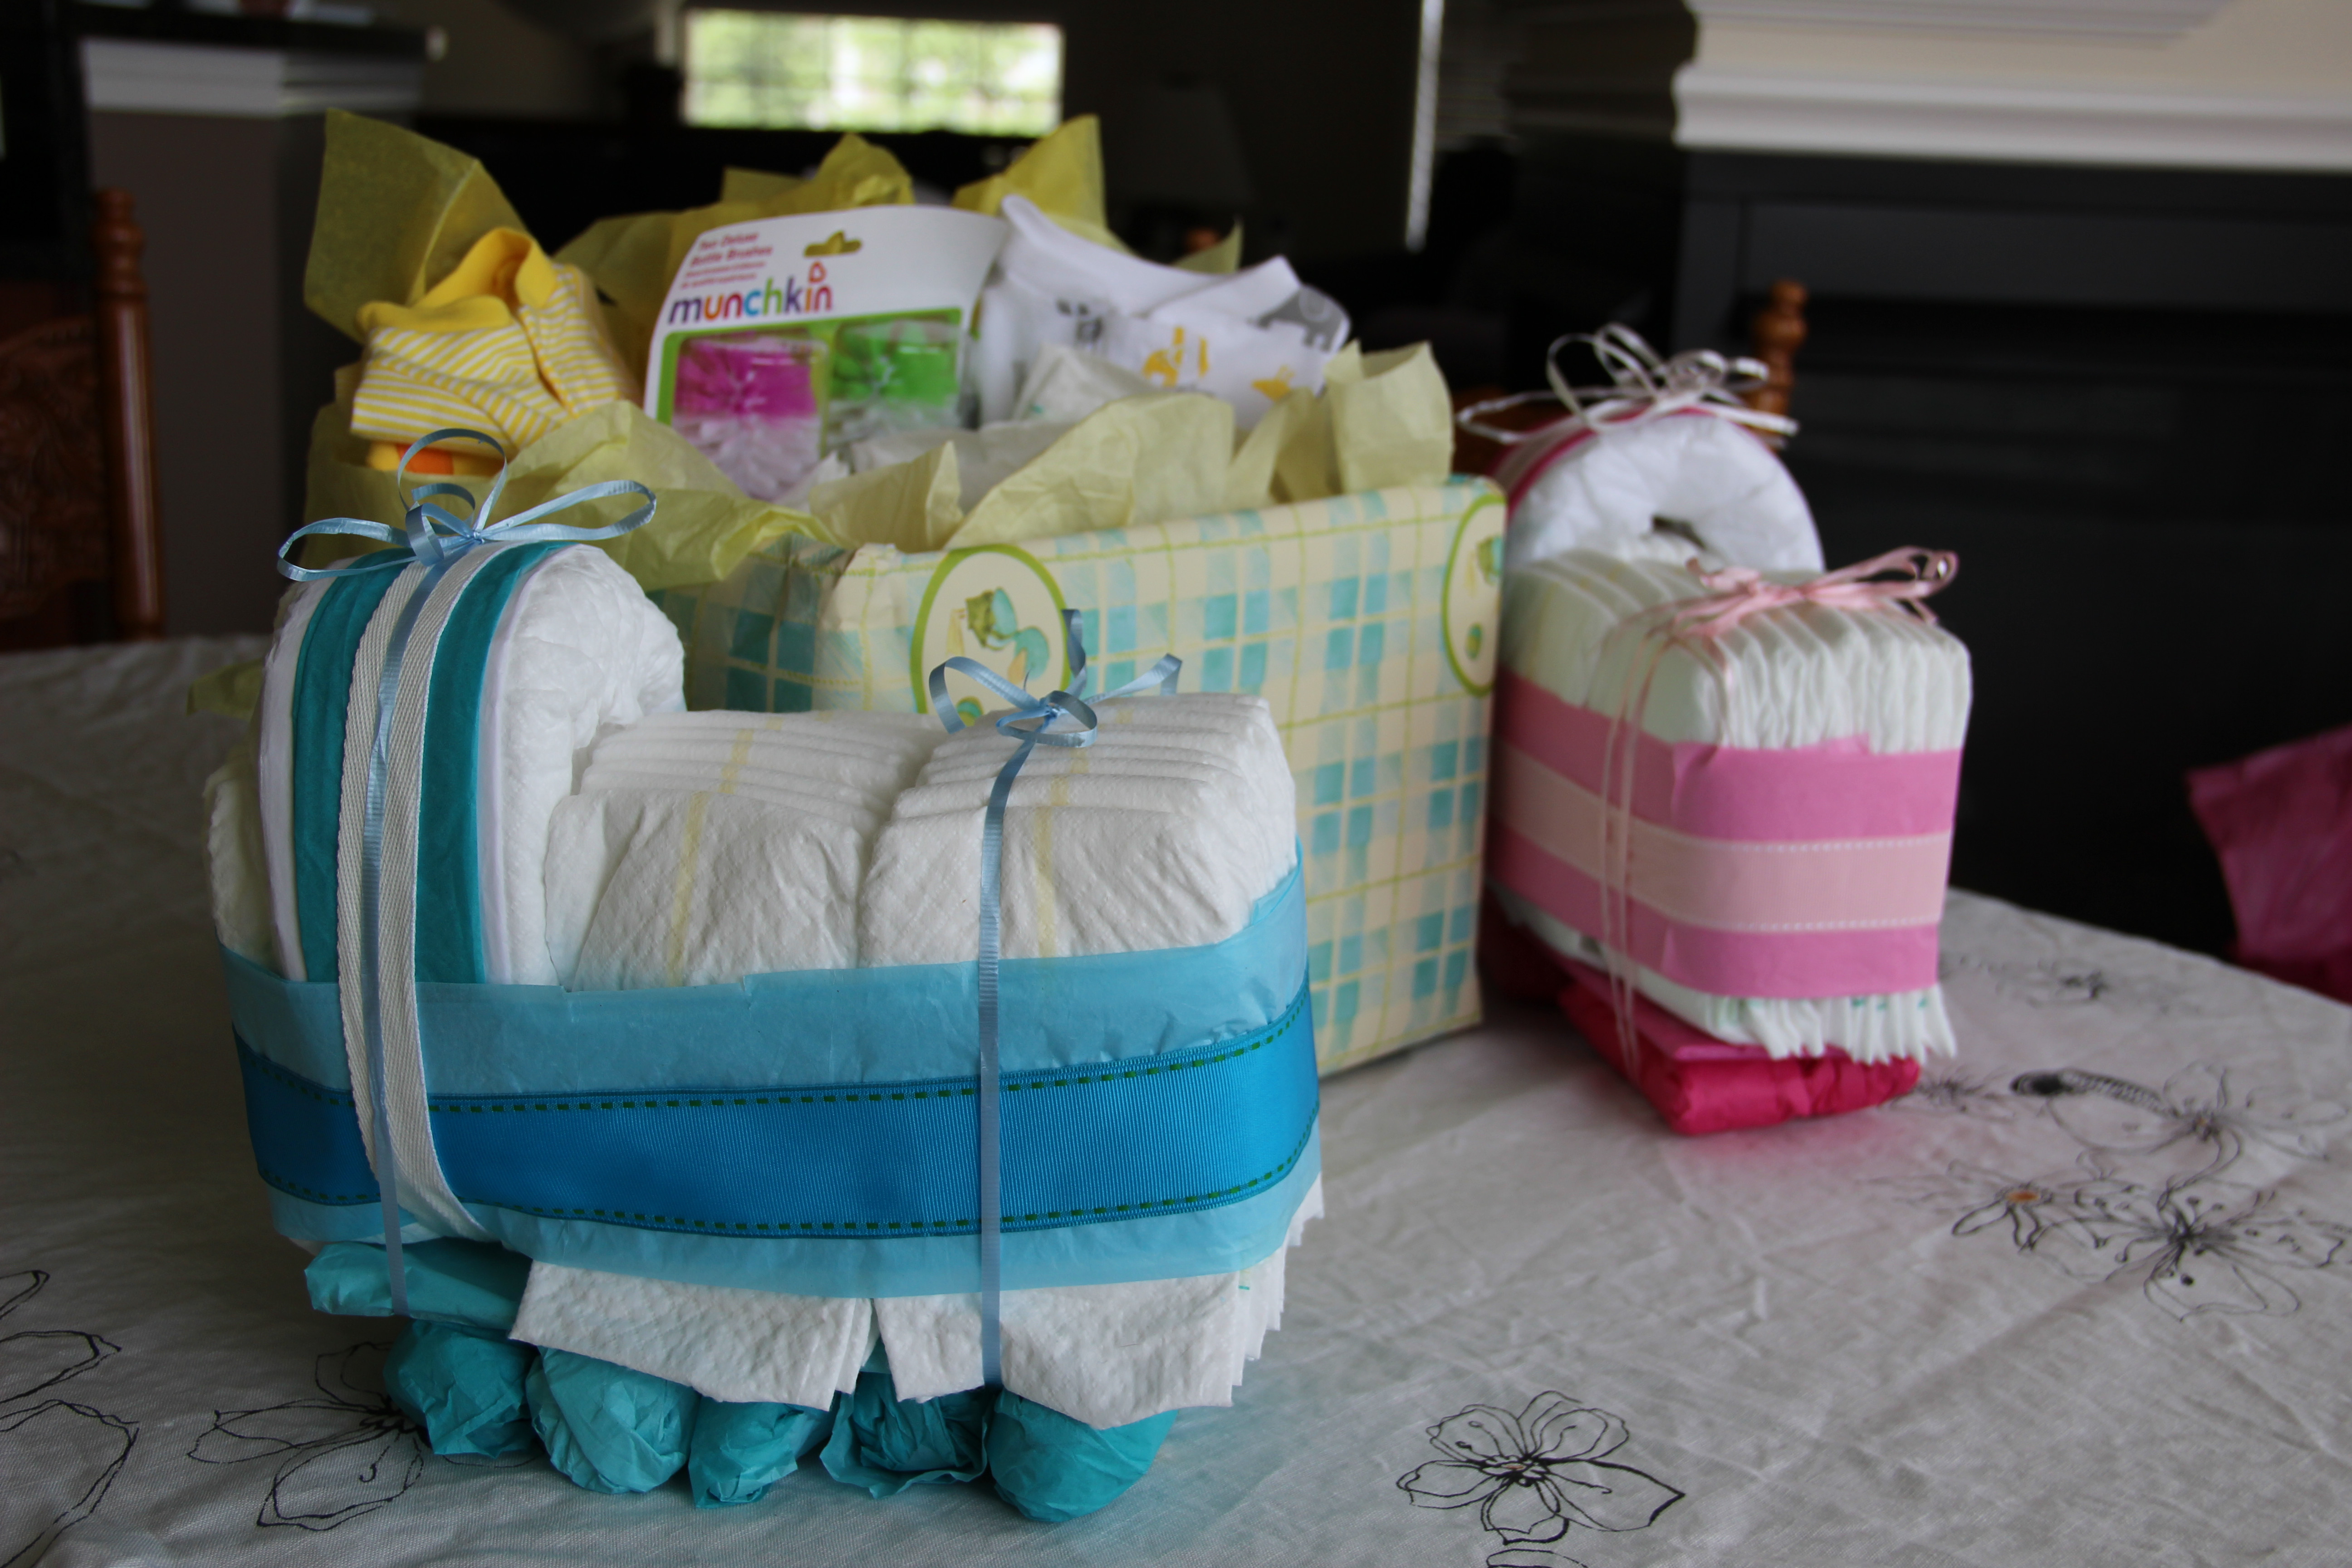 Best ideas about Twin Baby Shower Gift Ideas . Save or Pin The Importance of Being Cleveland Now.